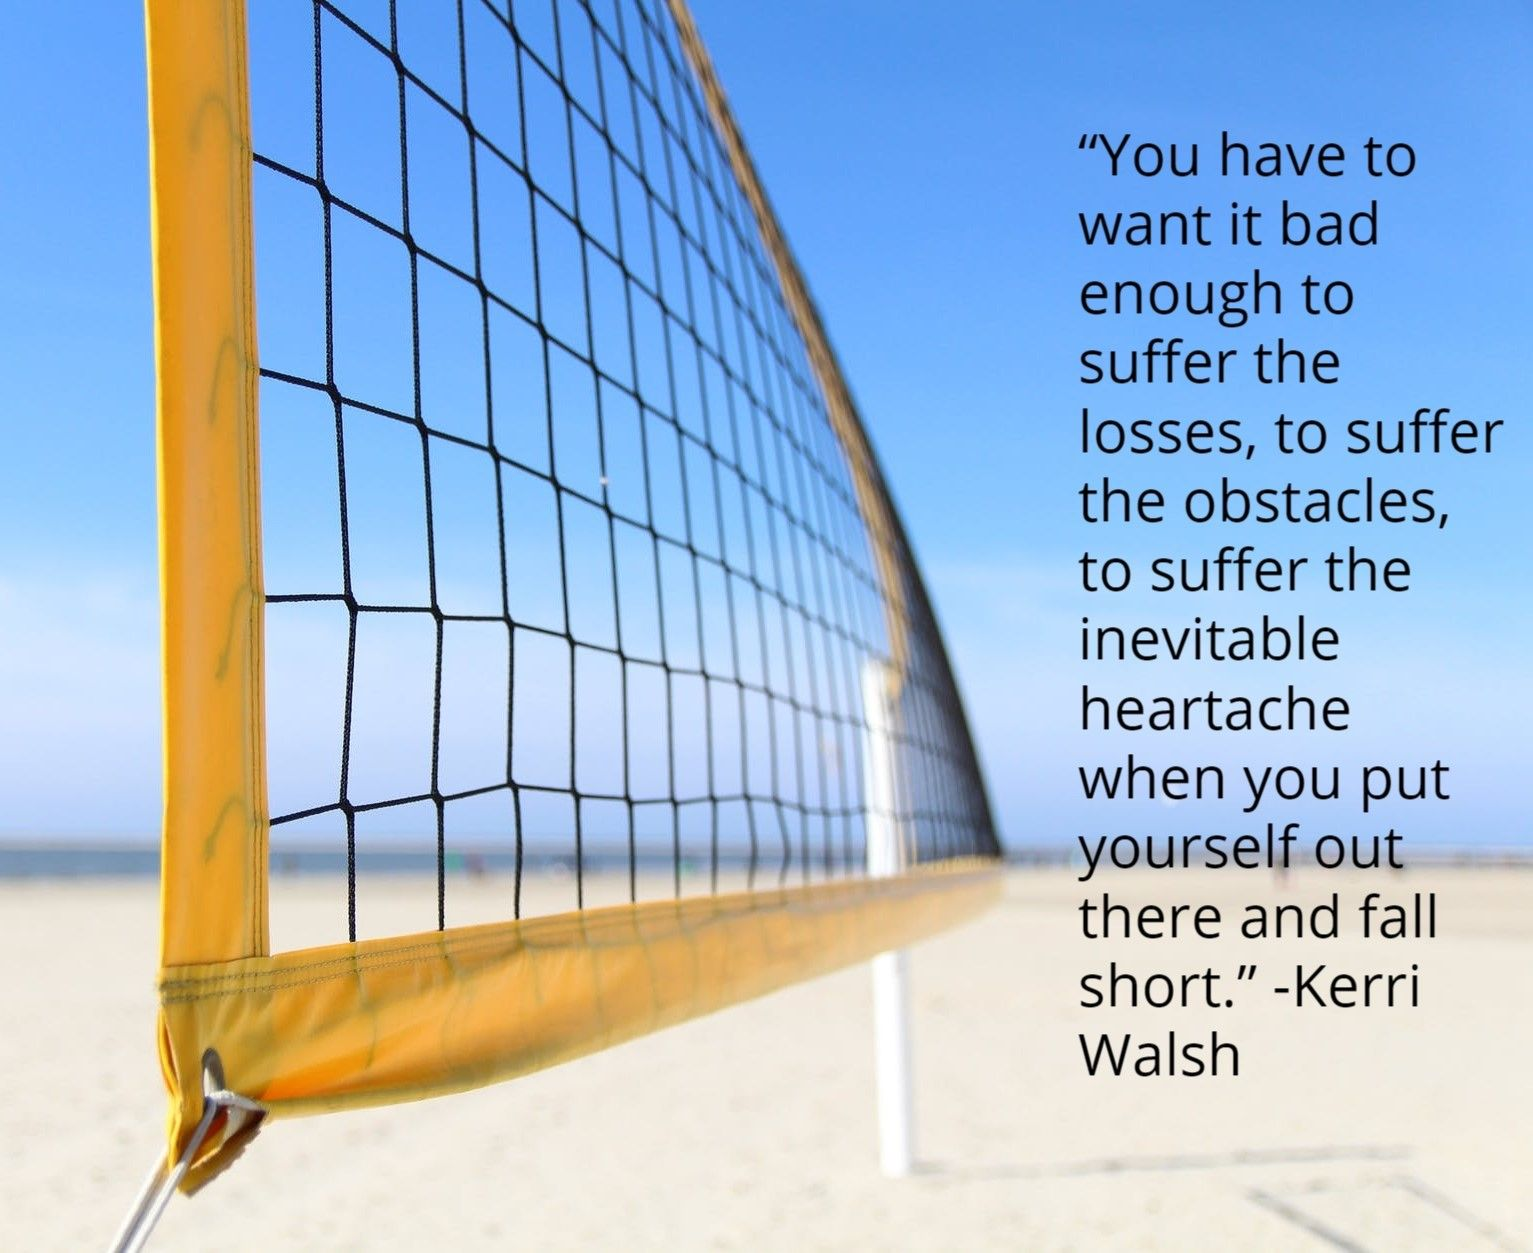 Best Volleyball Quotes Check Out Volleyball Quotes From Great Players To Get You Motivated For The Season Volleyball Quotes Sports Quotes Volleyball